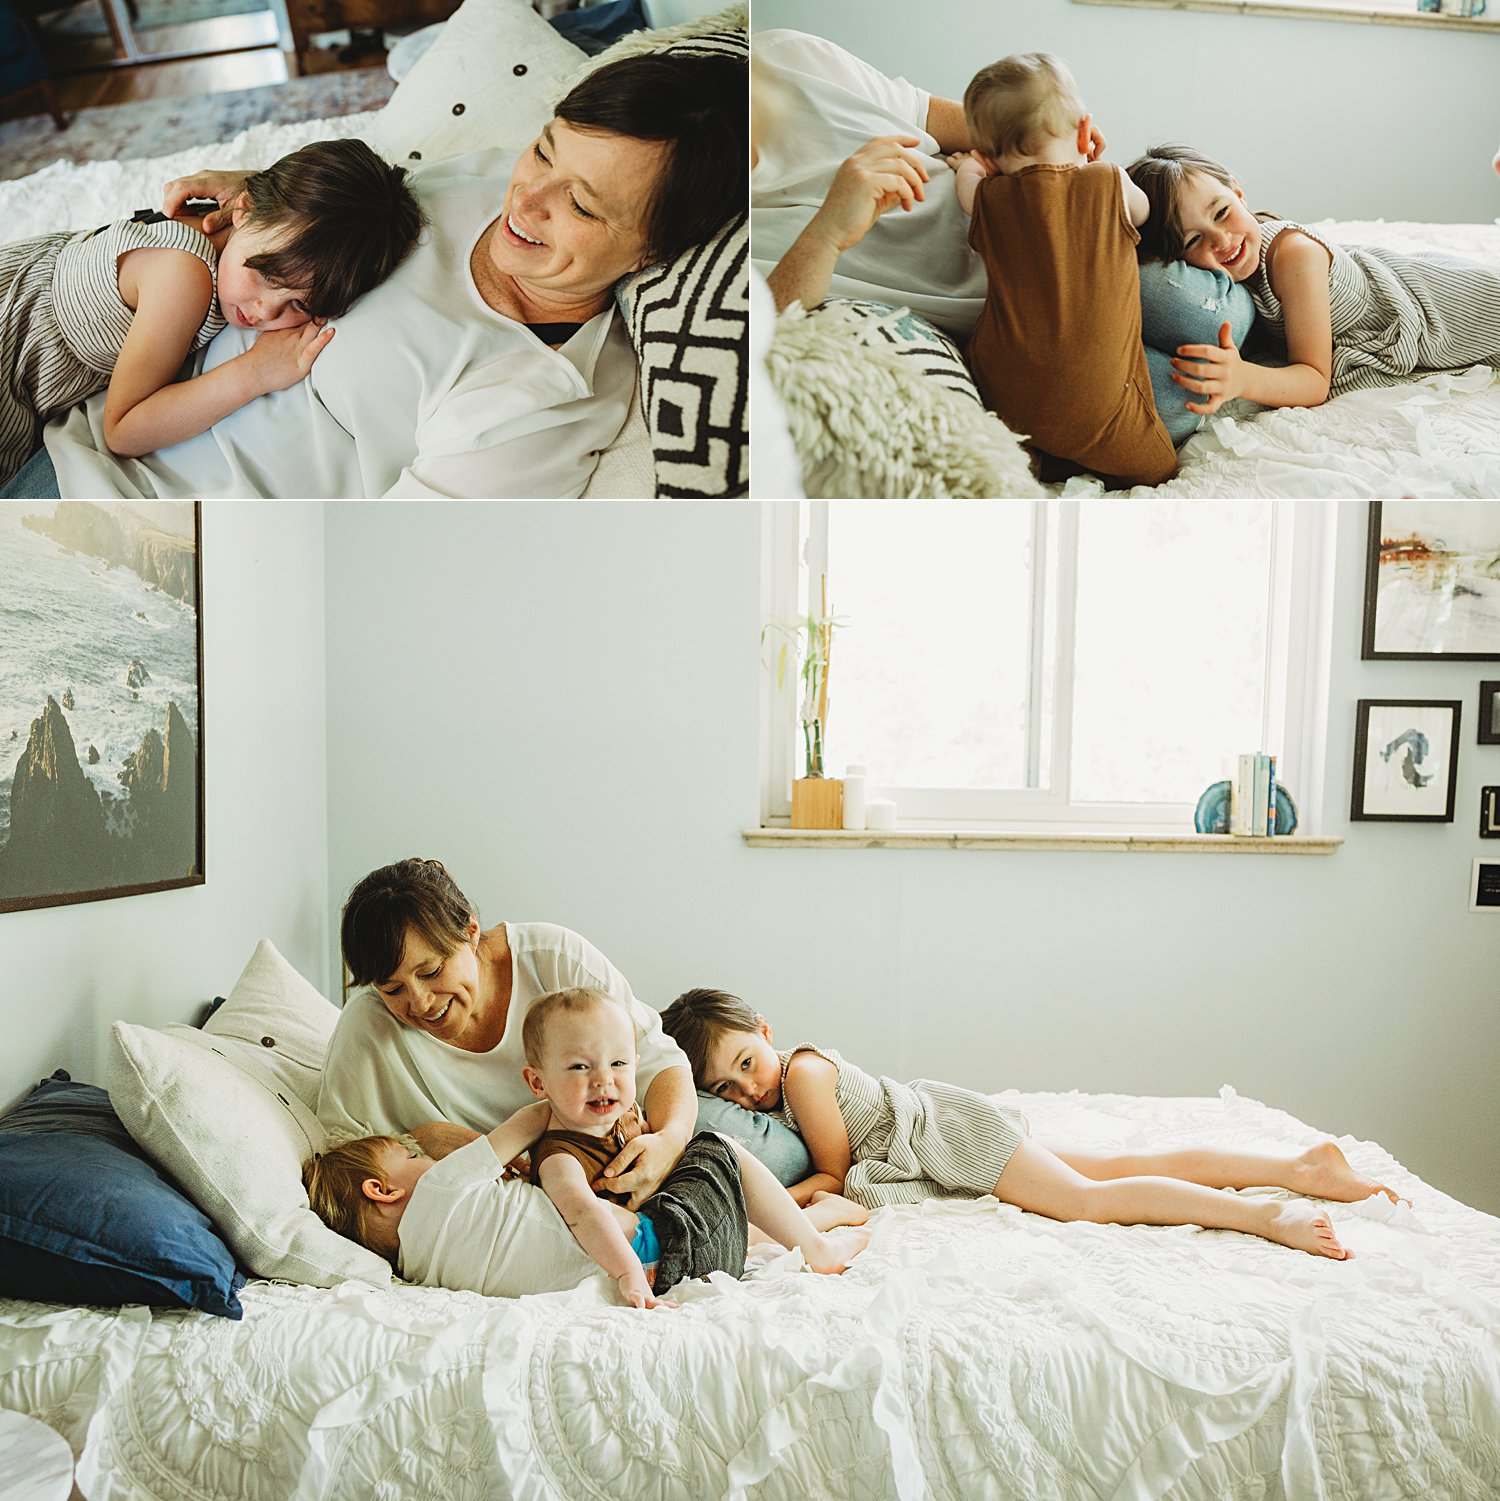 Mom cuddling with children on bed